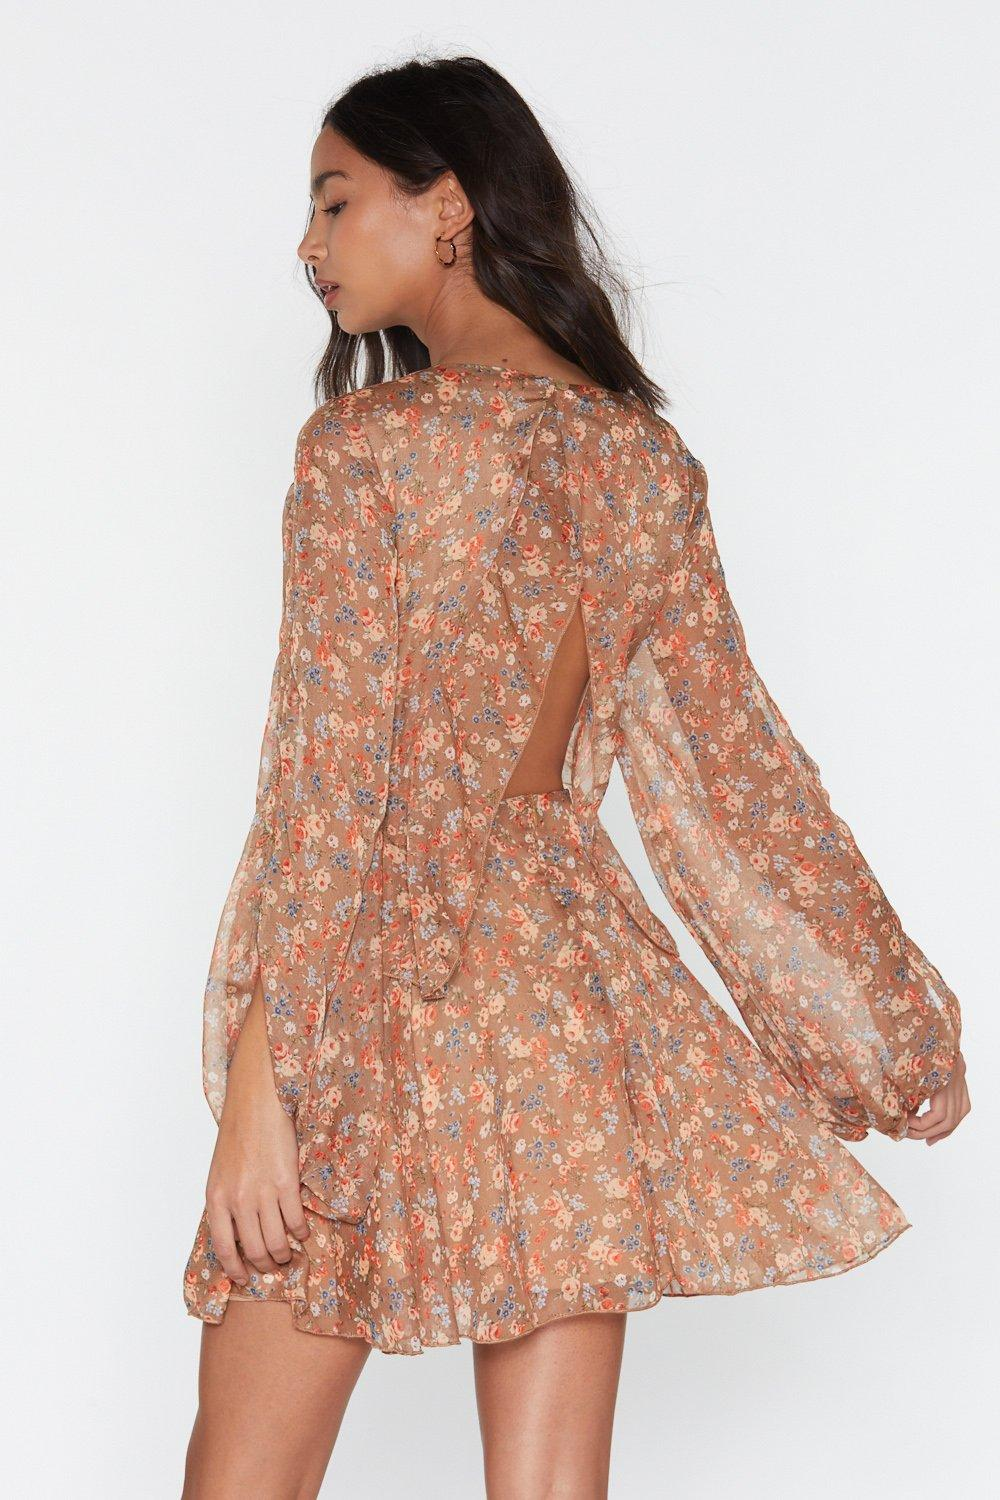 2745a632917a1 Swing to the Music Floral Mini Dress   Shop Clothes at Nasty Gal!